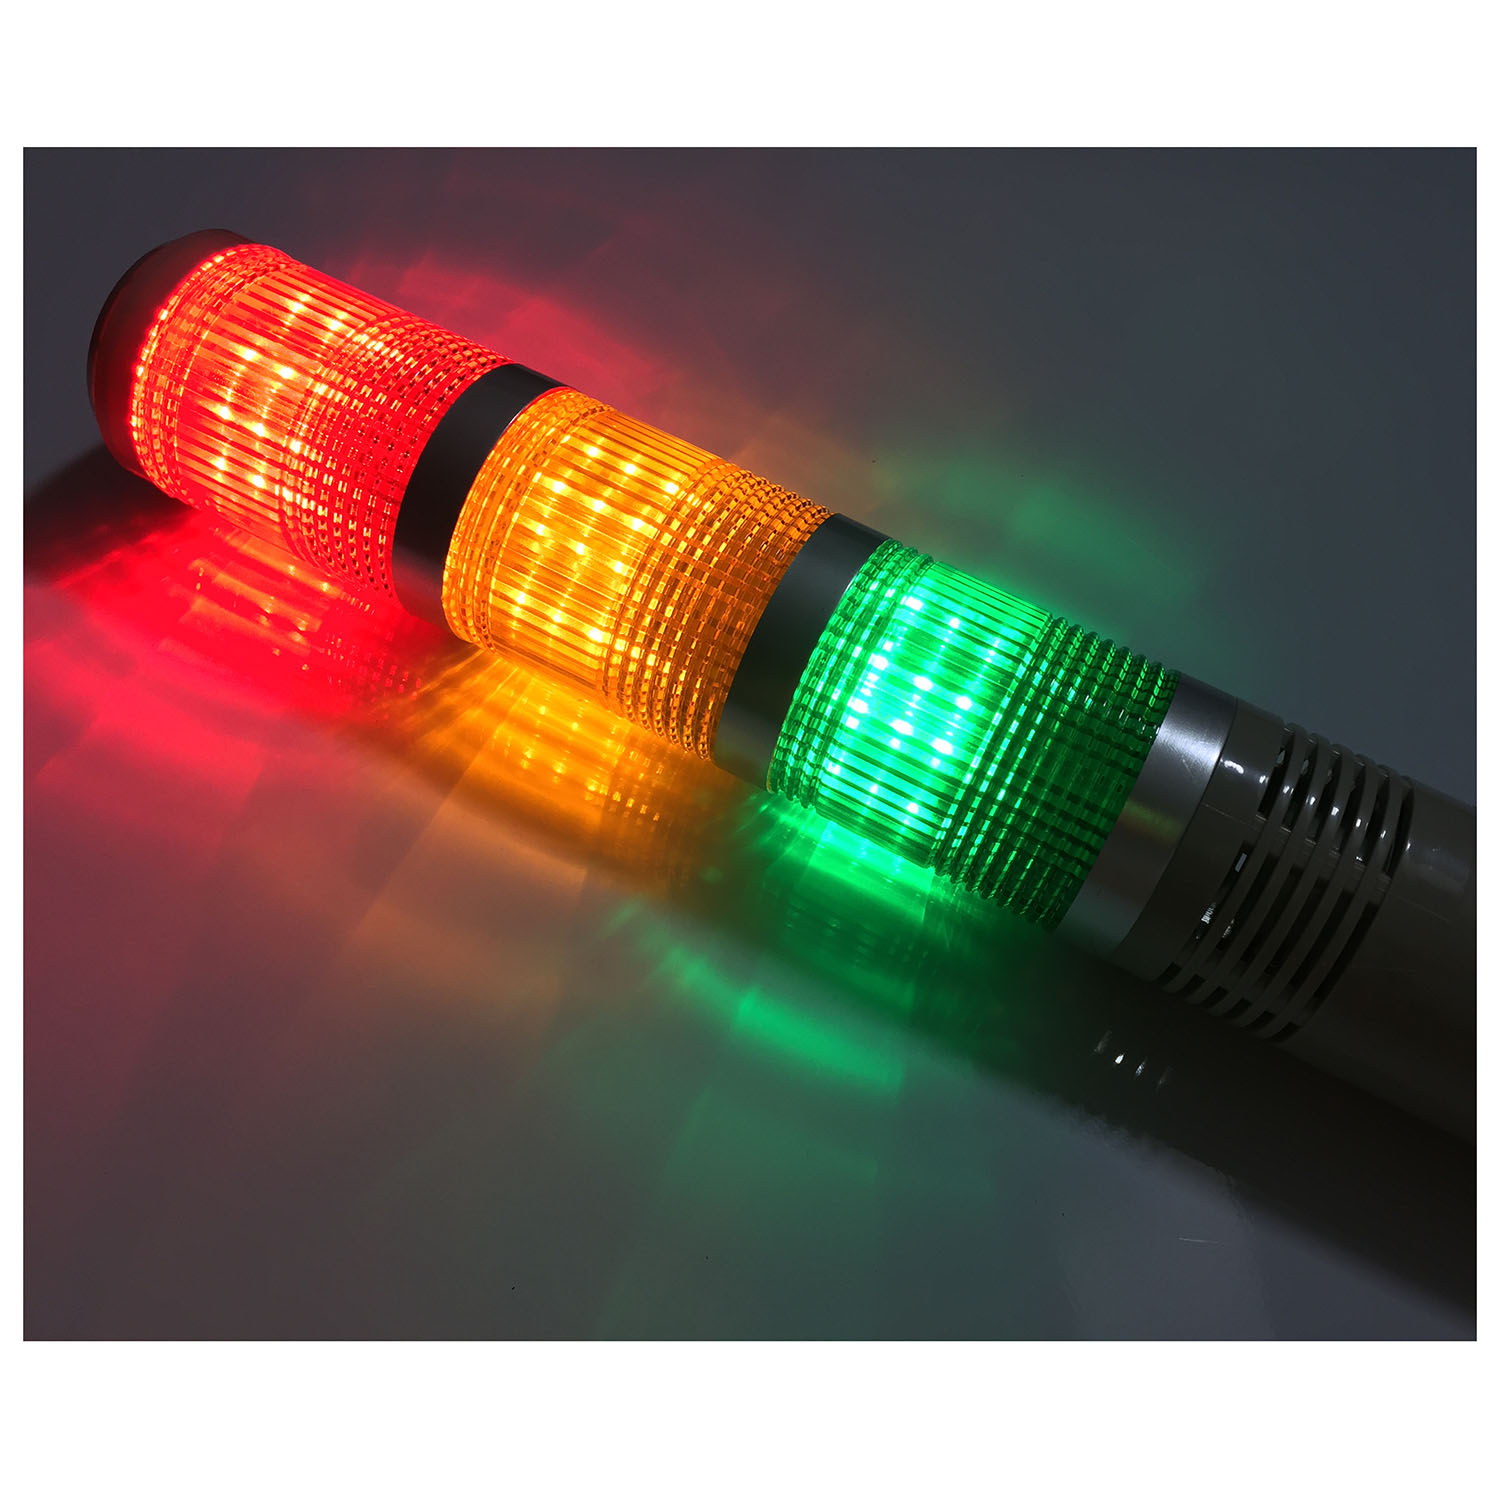 AC/DC 24V Red Green Yellow LED Lamp Industrial Tower Signal Light